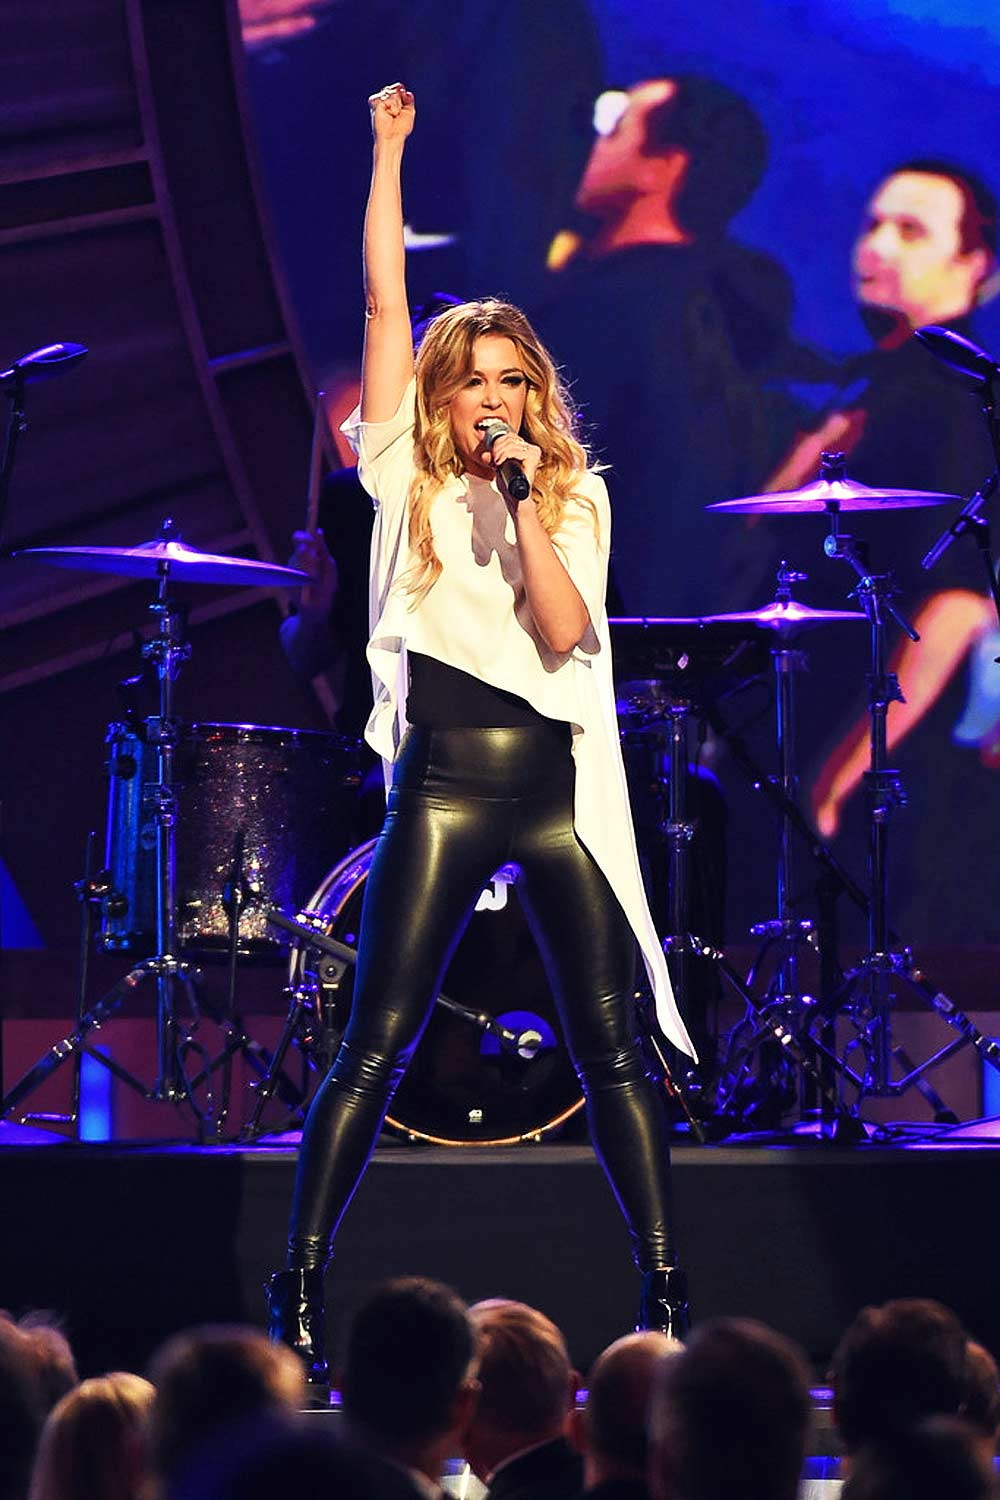 Rachel Platten performing during the 2015 NASCAR Sprint Cup Series Awards